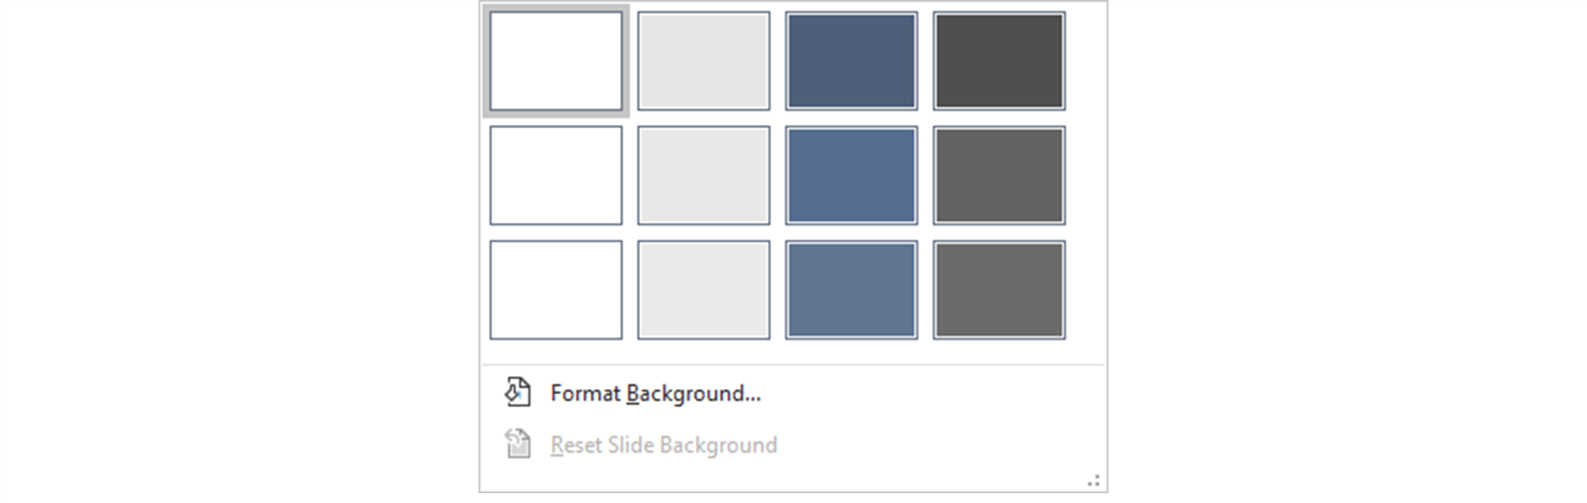 Screenshot showing the background style menu in PowerPoint